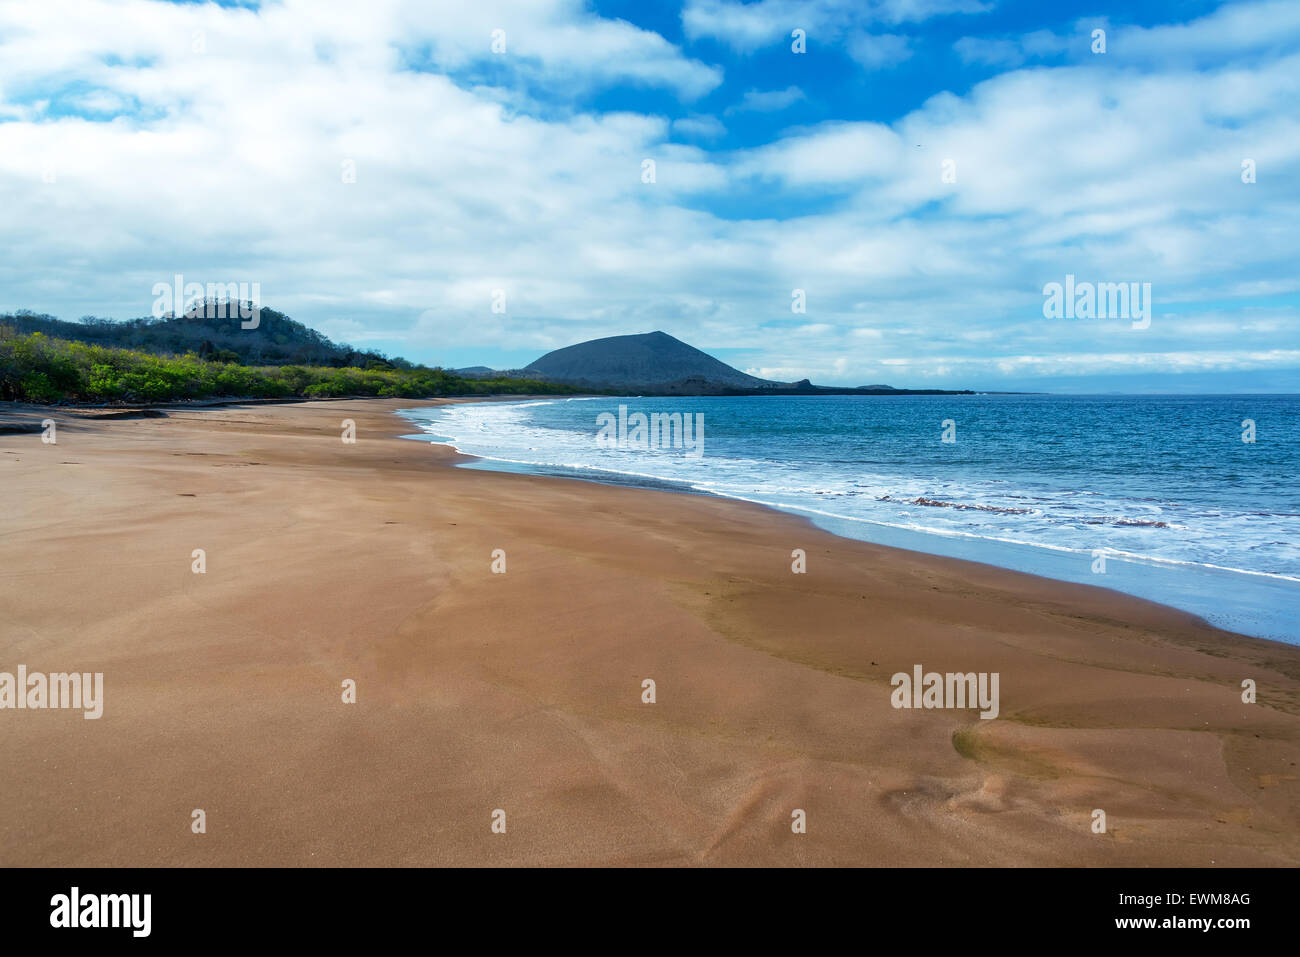 Wide sandy beach on Santiago Island in the Galapagos Islands - Stock Image